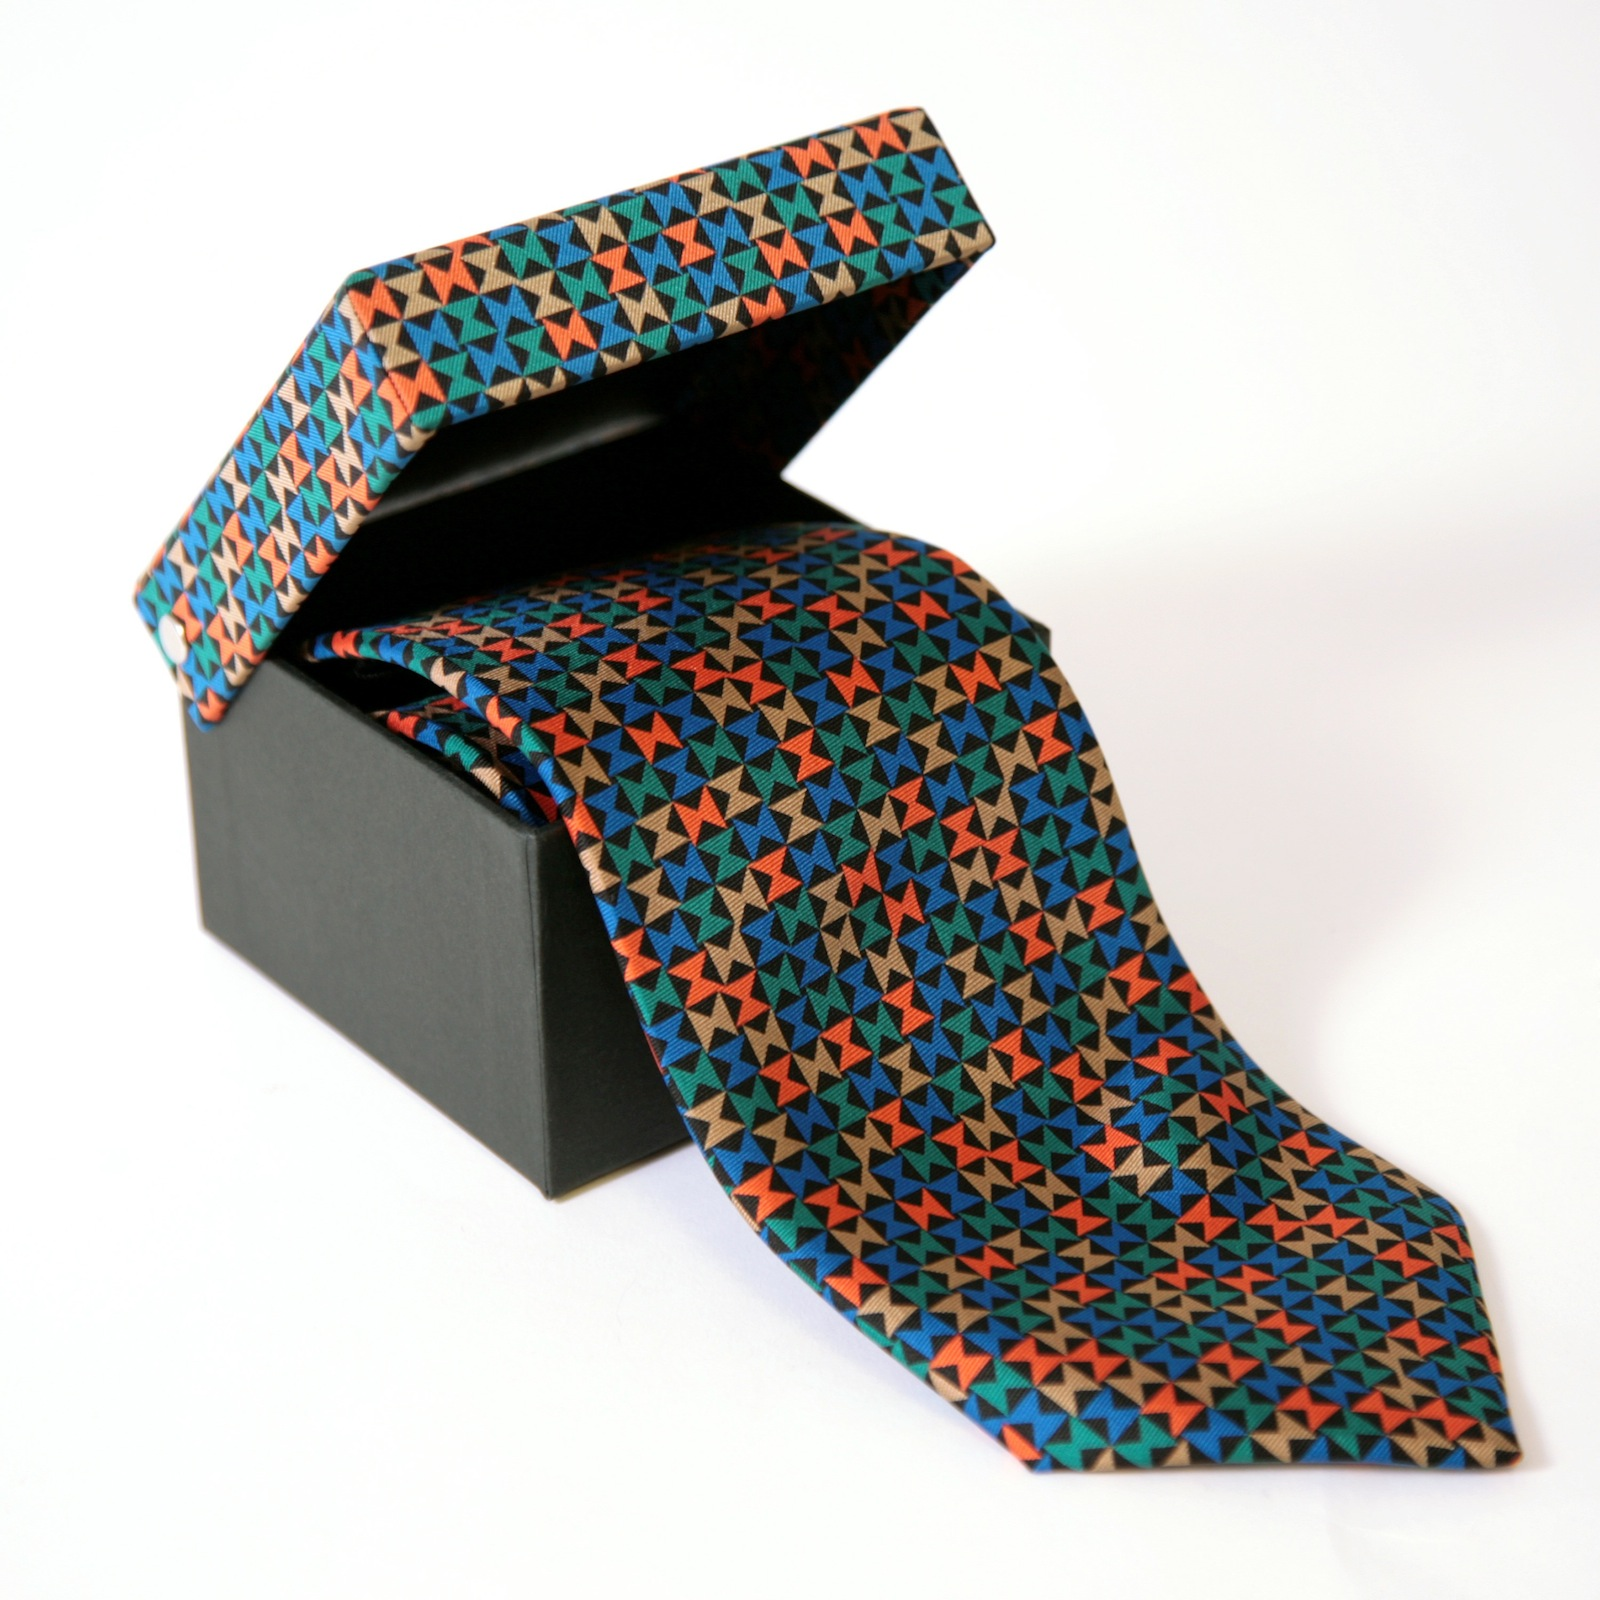 The Pinwheel pattern reappears in a different form on this graphic silk tie.